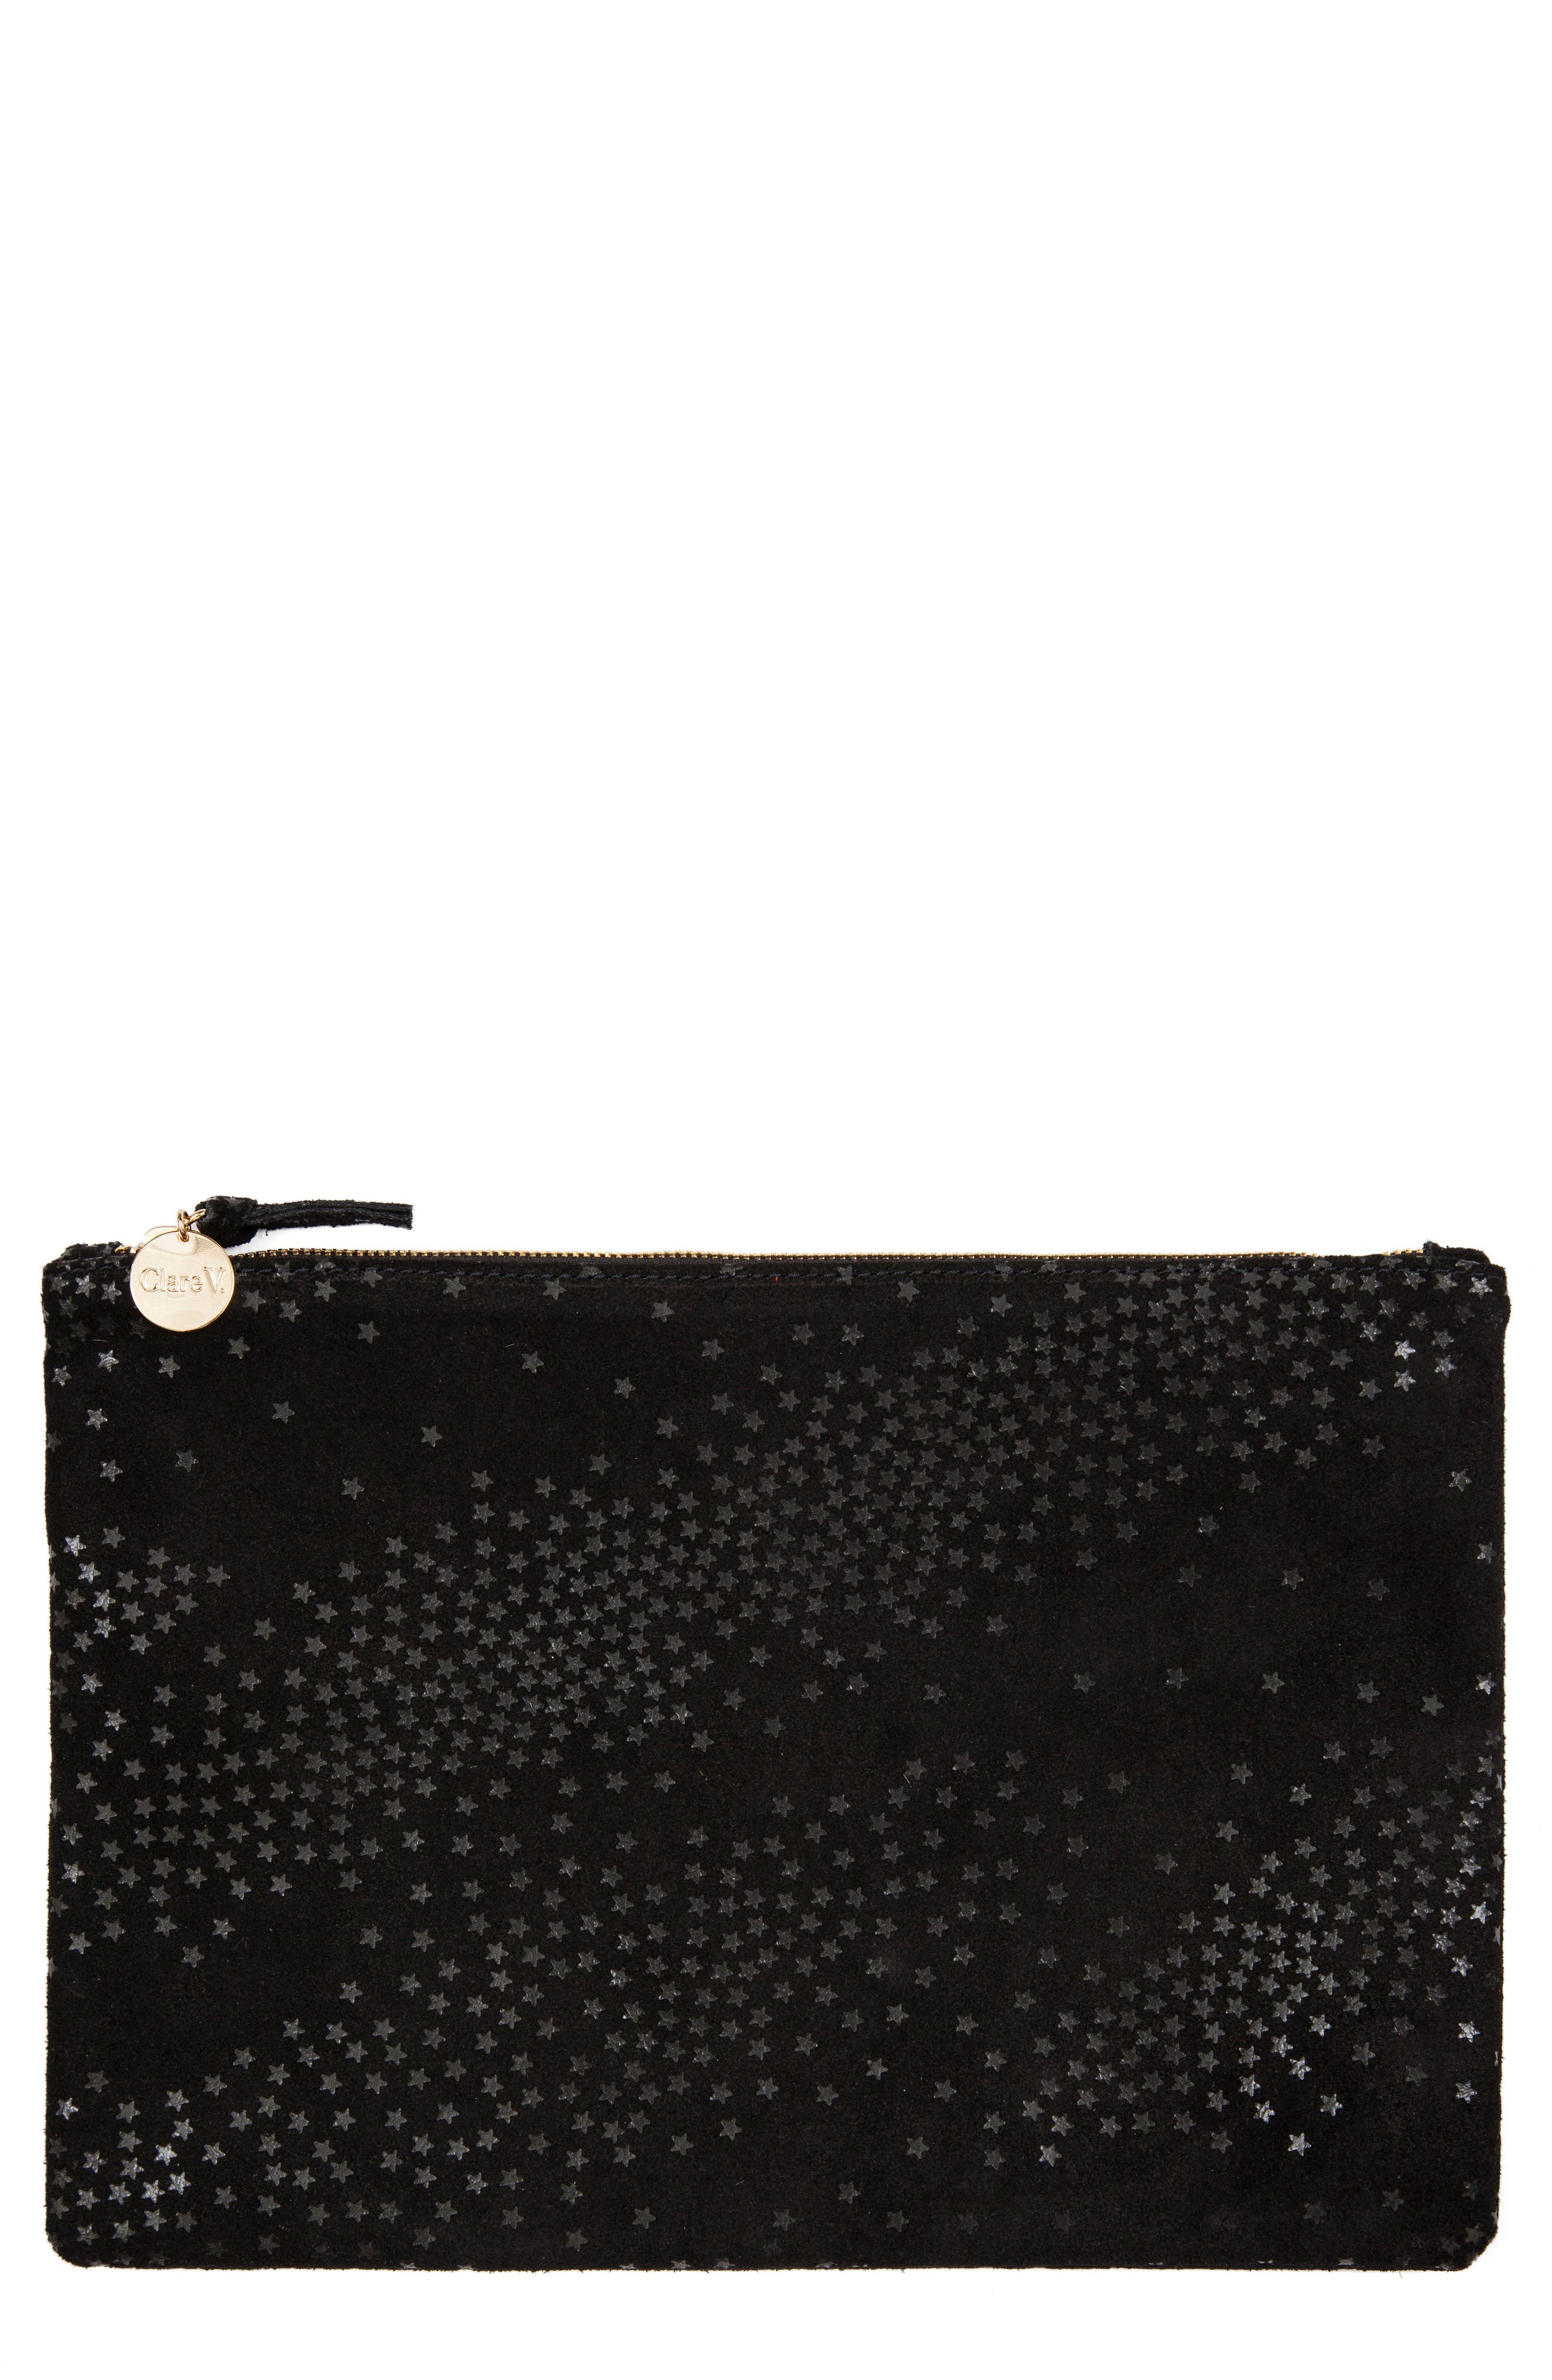 Clare V. Star Suede Clutch